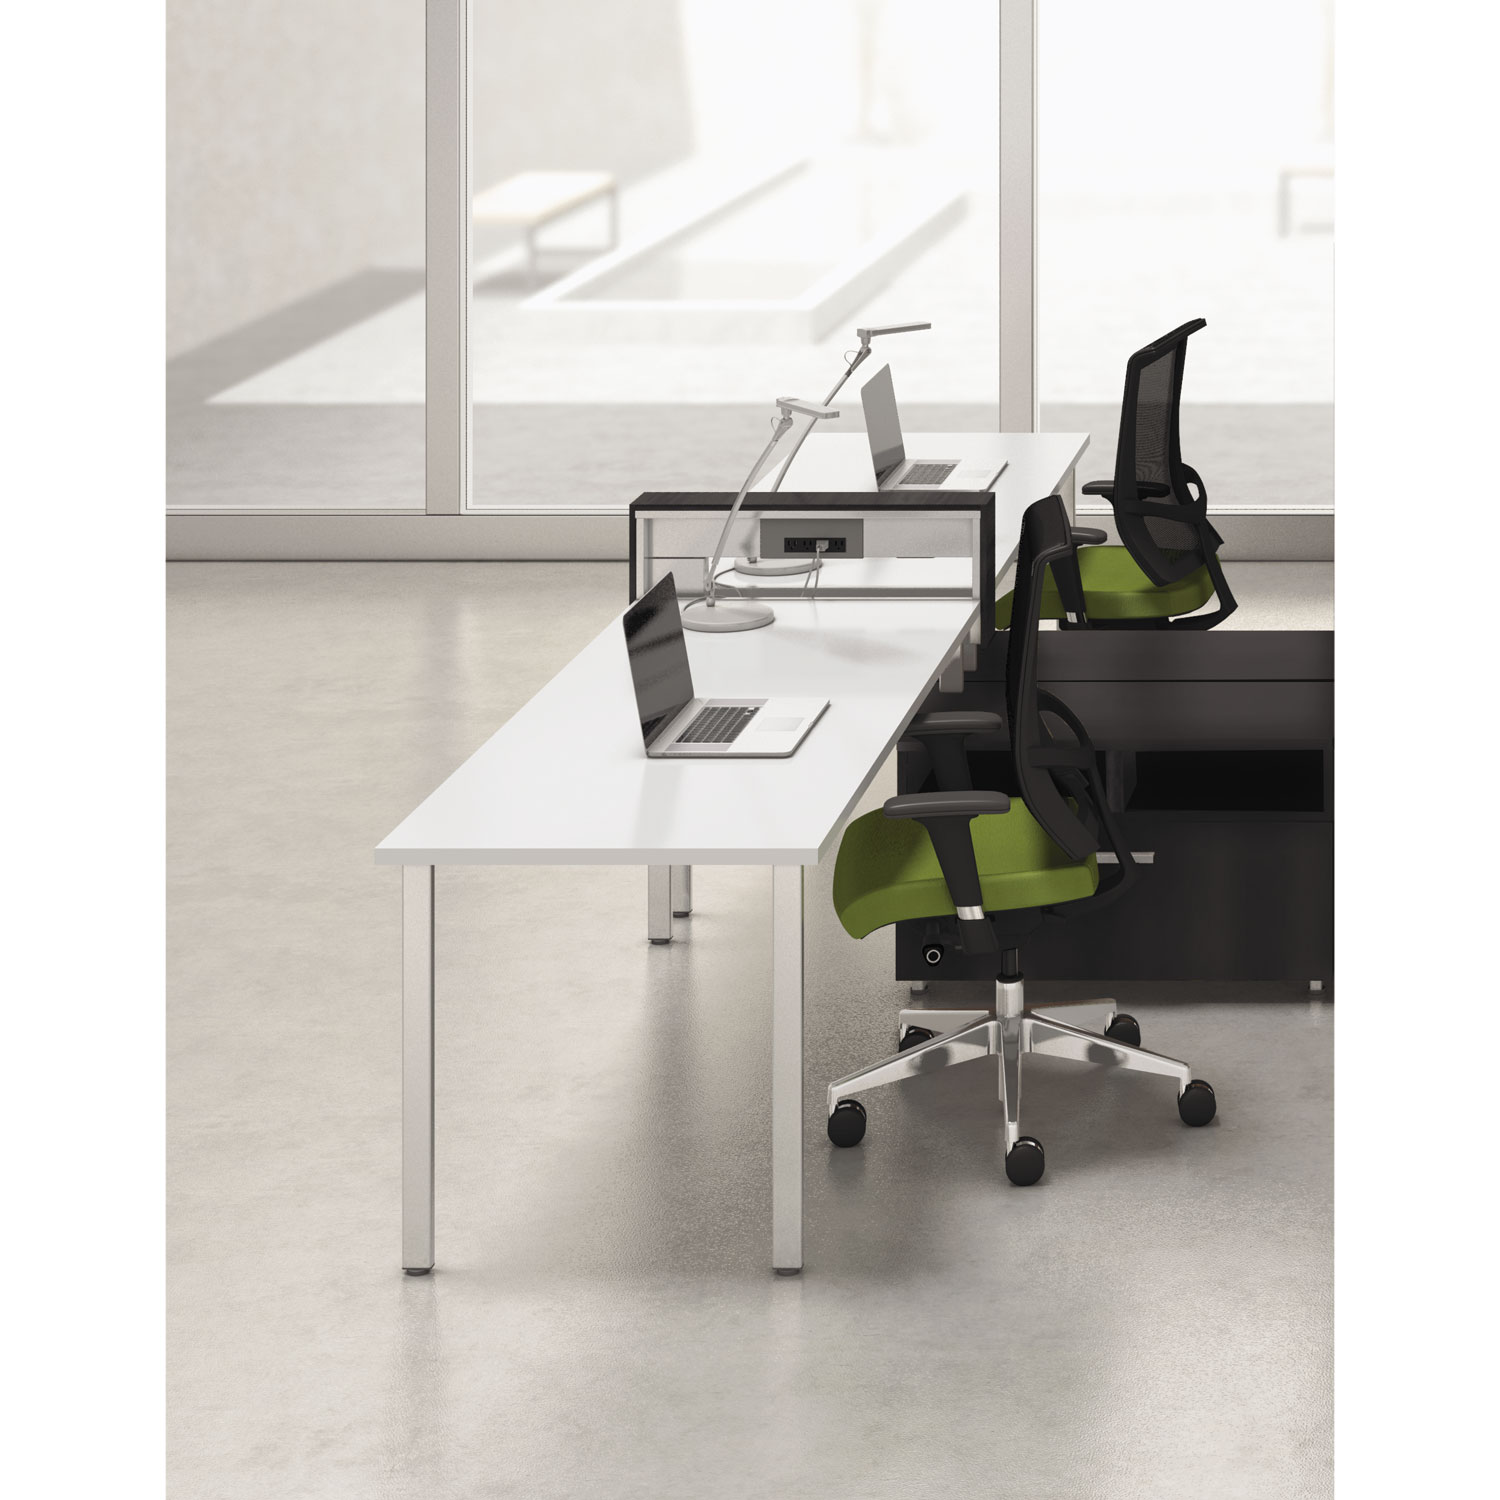 2 Person Work Station Mayline Ezpw3c002 E5 Two Person Workstation With Beltway